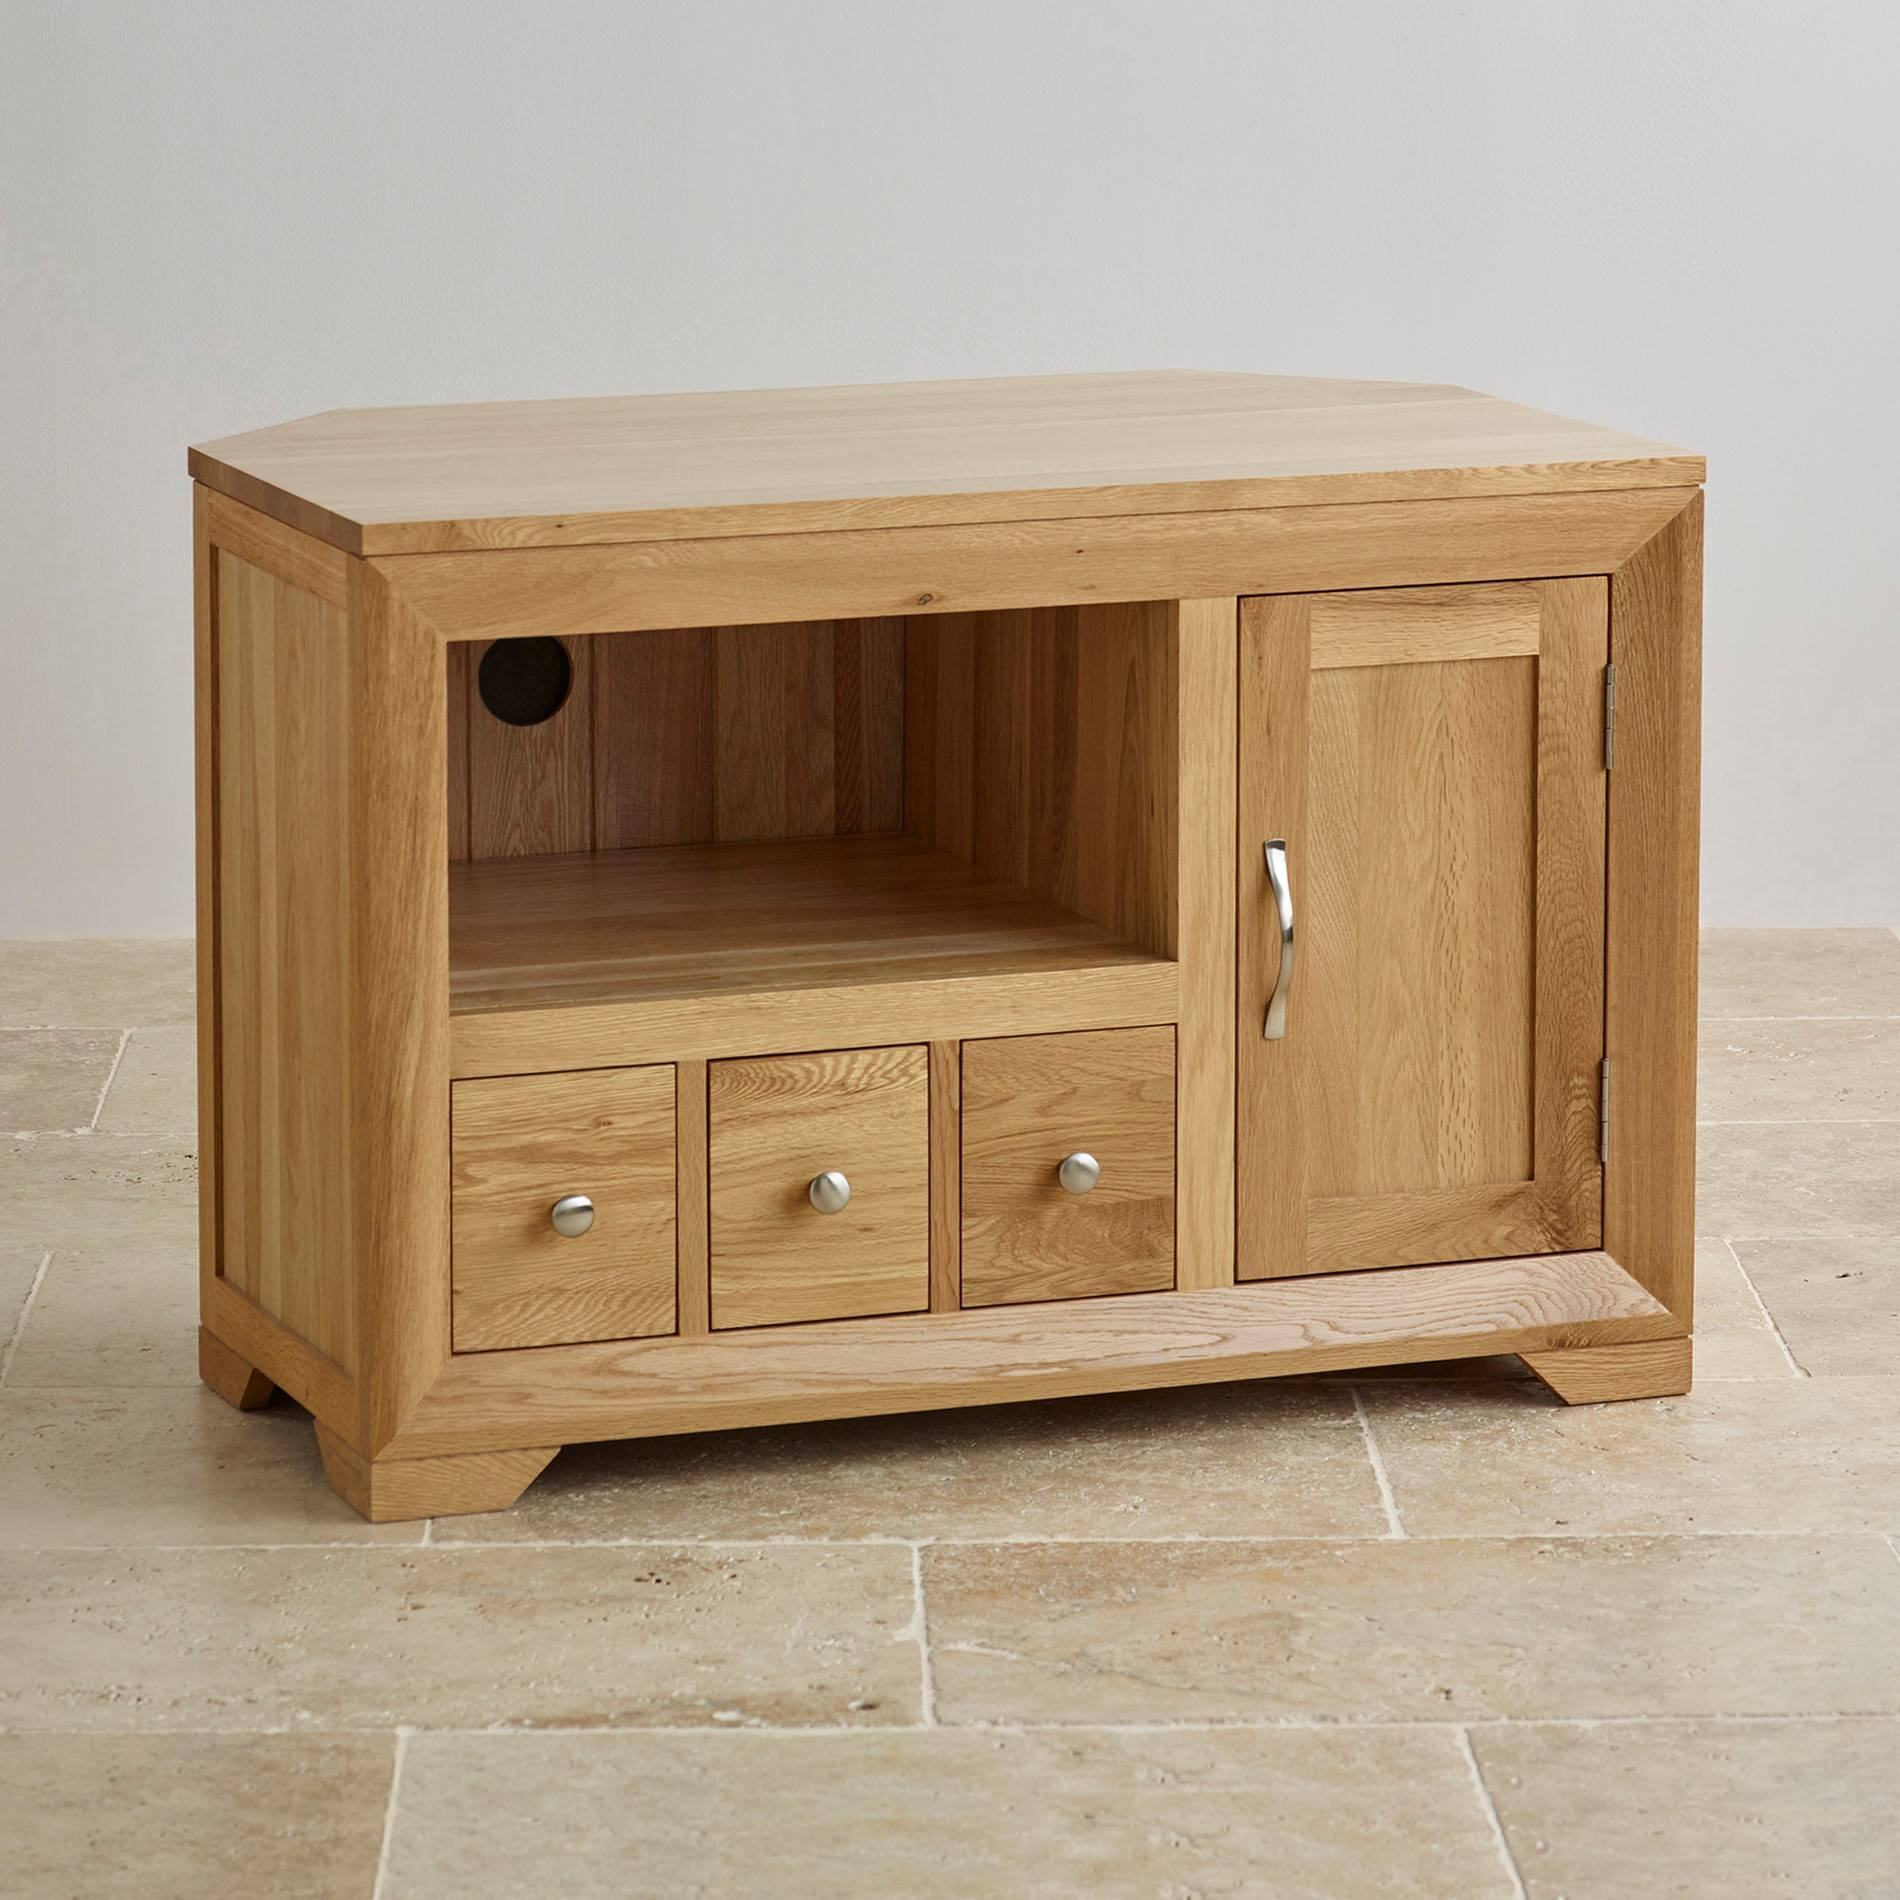 Tv Cabinets & Units | 100% Solid Oak | Oak Furniture Land With Wood Corner Tv Cabinets (View 12 of 15)